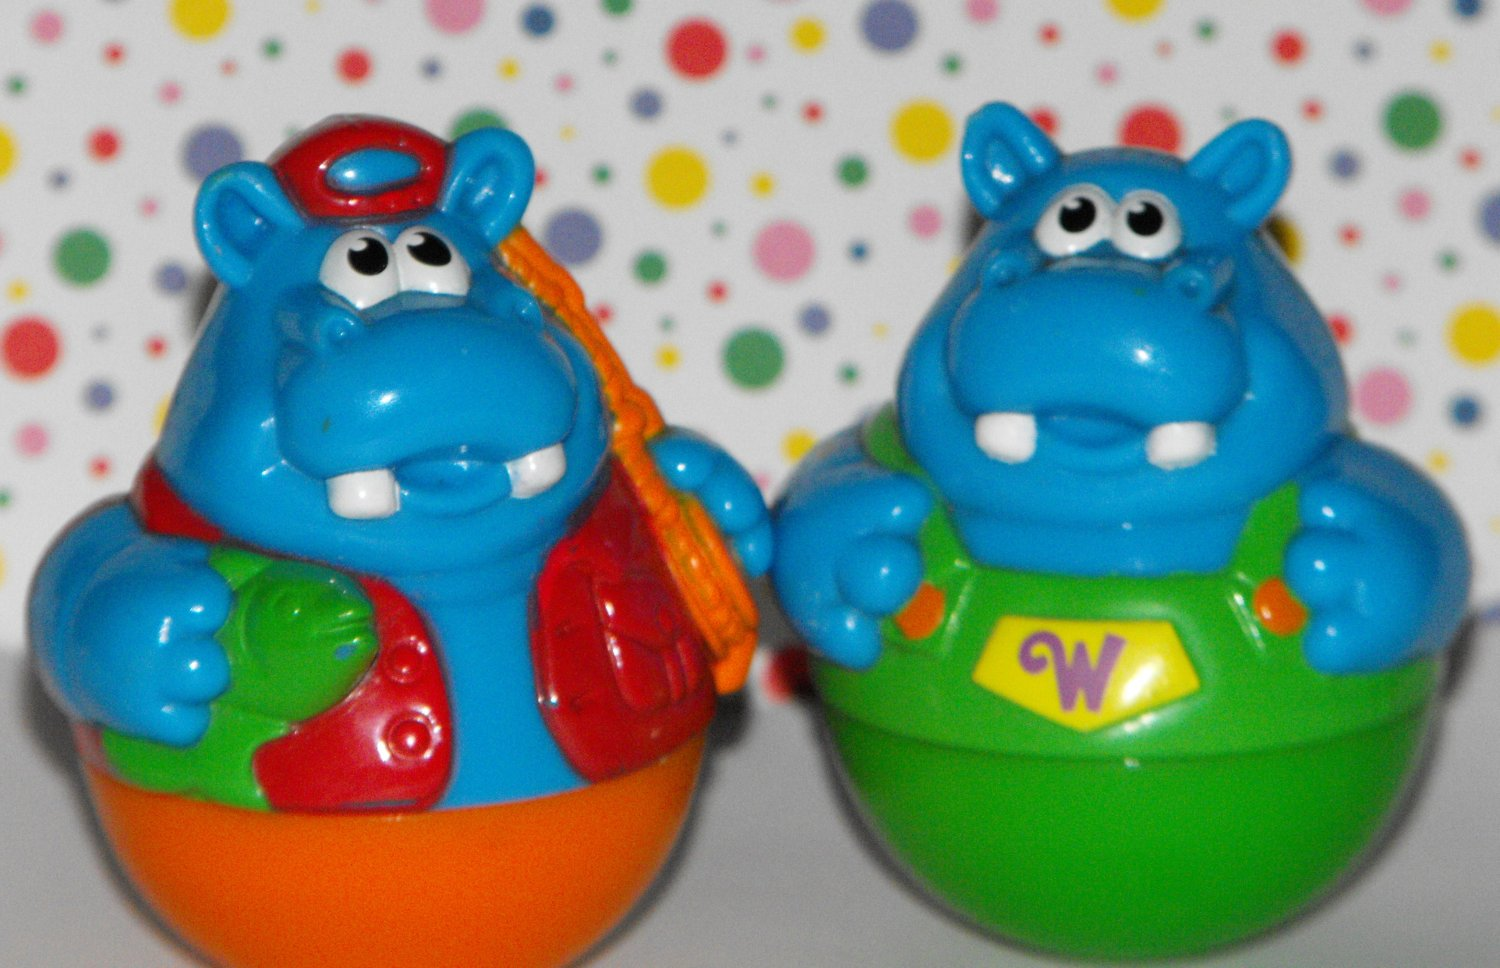 buy remote control car with 11soldplayskool Weebles Hippo Lot Fisherman on Item 24246 Fly Audio E7532NAVI 1 2008 2009 Subaru Impreza further Optocoupler Pc817 in addition Index together with 32668912730 furthermore Item 10750 Alpine CDA 9886.